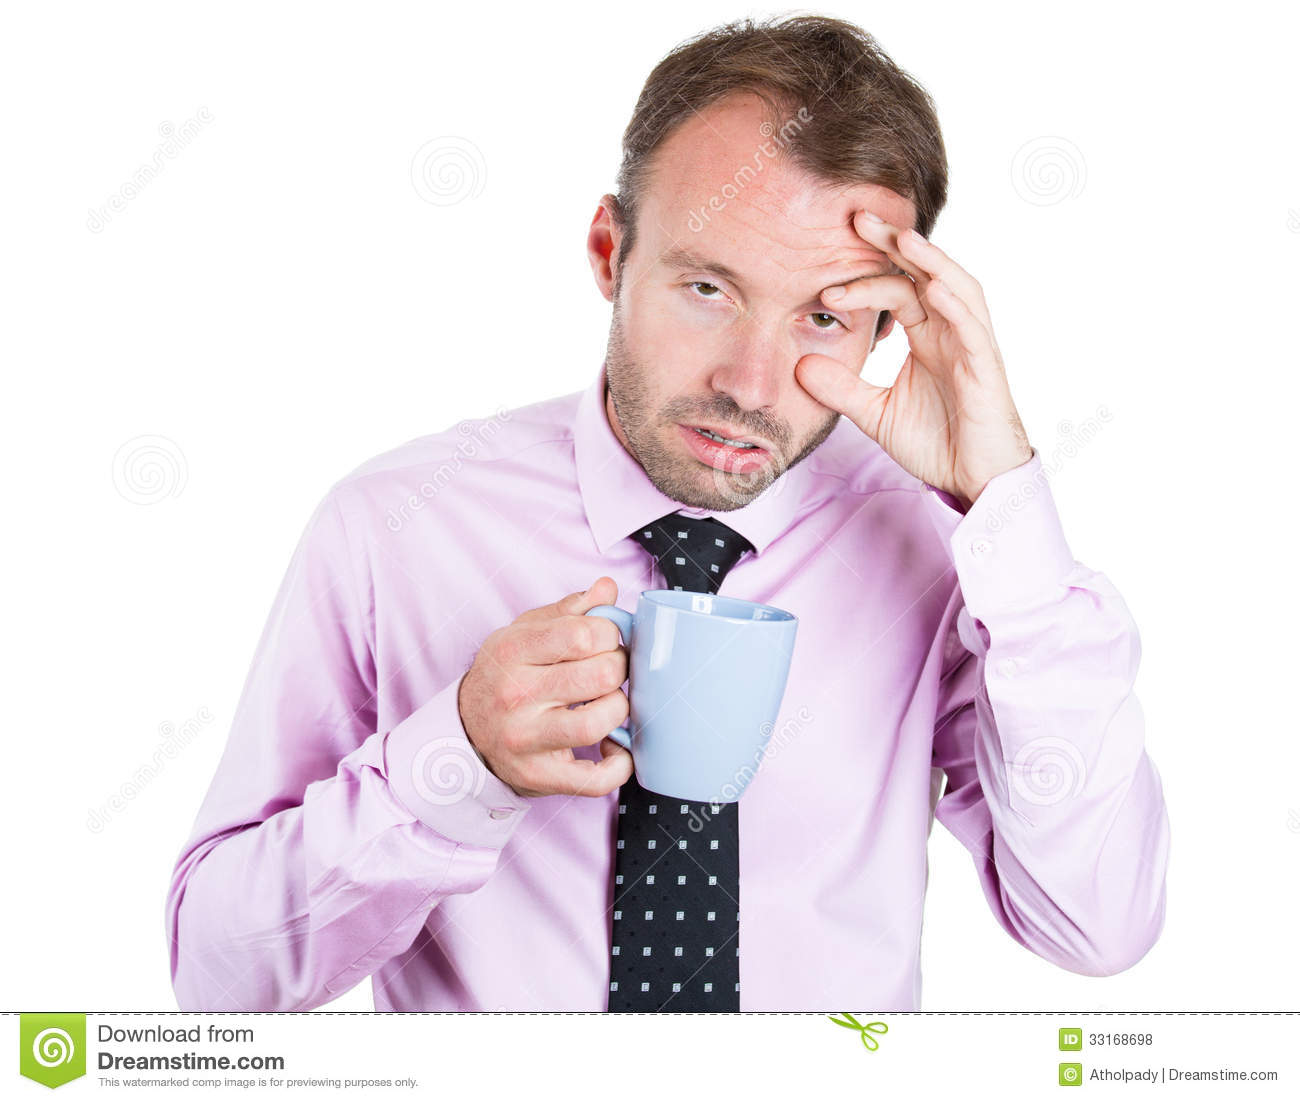 Very tired, almost falling asleep businessman holding a cup of coffee, struggling not to crash and stay awake